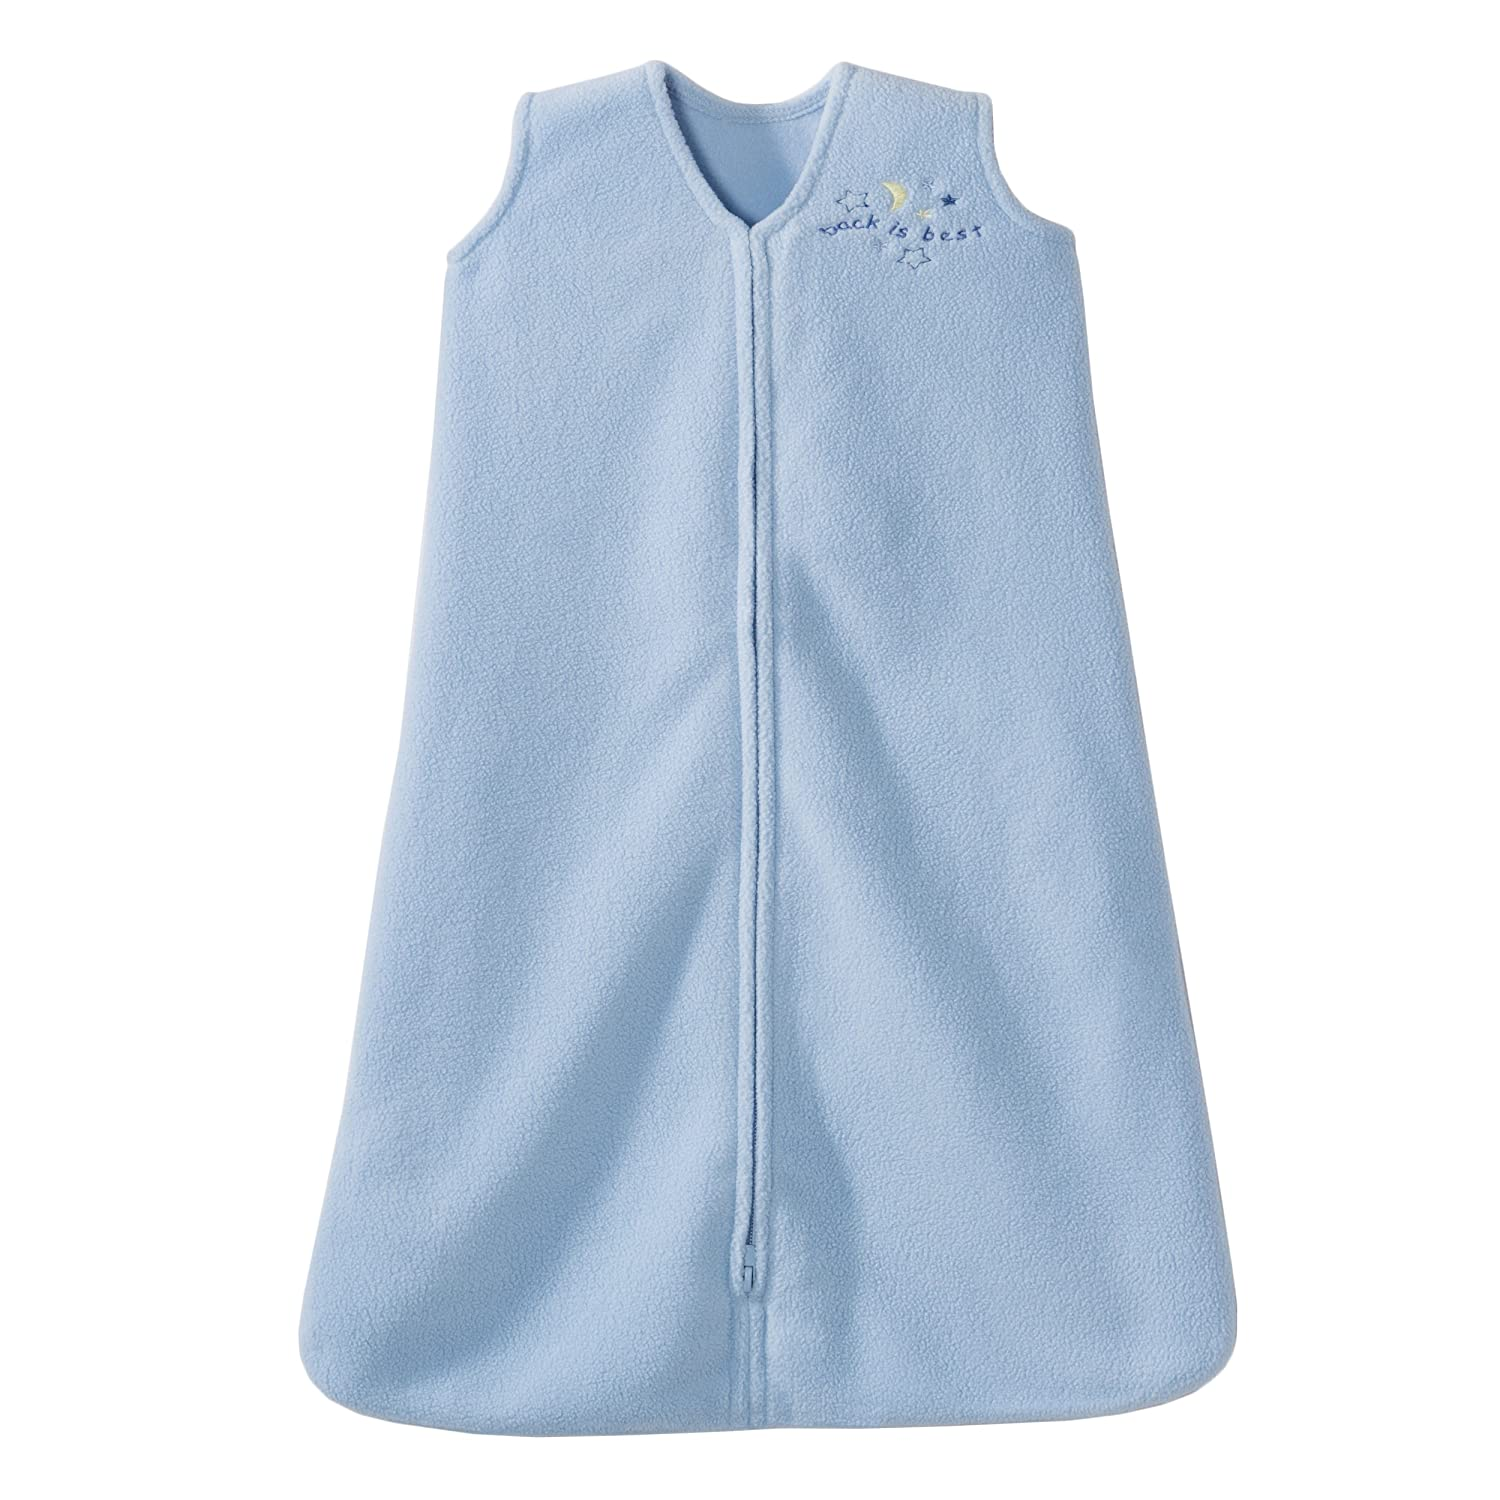 B000069EXQ HALO Sleepsack Micro-Fleece Wearable Blanket, Baby Blue, Medium 91OJKO2FNFL